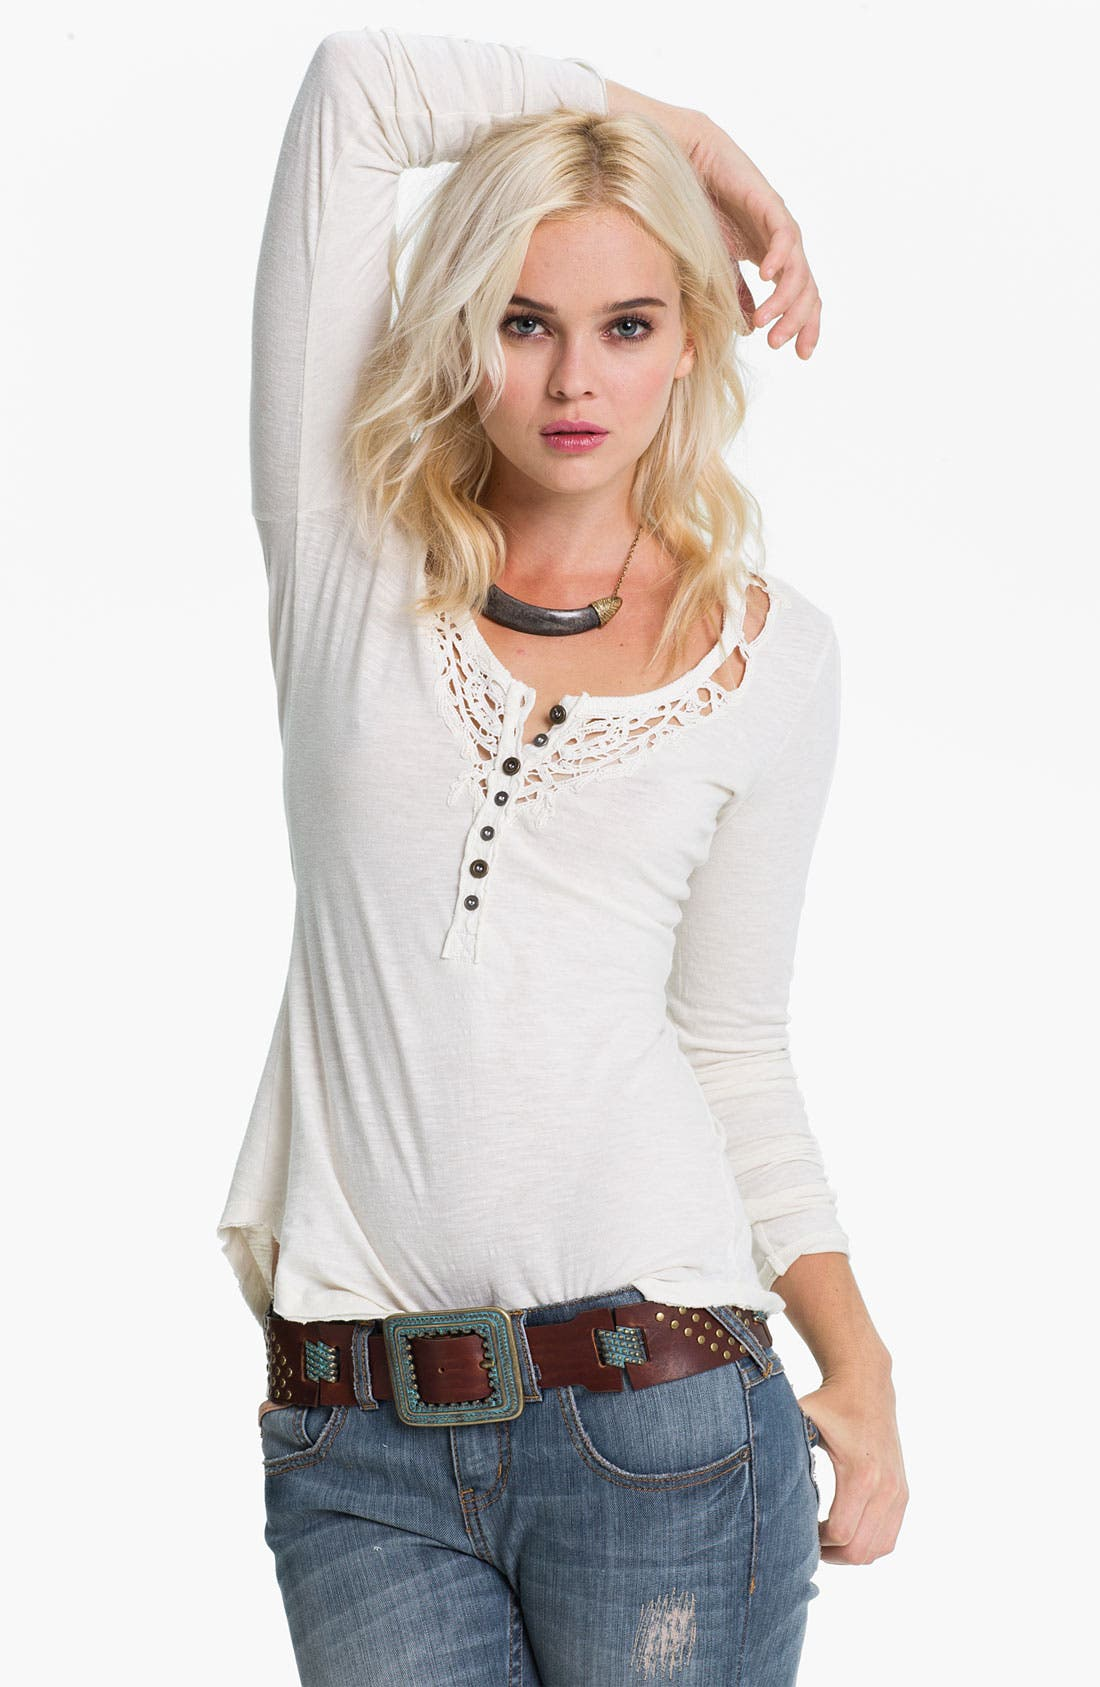 Alternate Image 1 Selected - Free People 'Legacy' Crochet Neck Henley Top